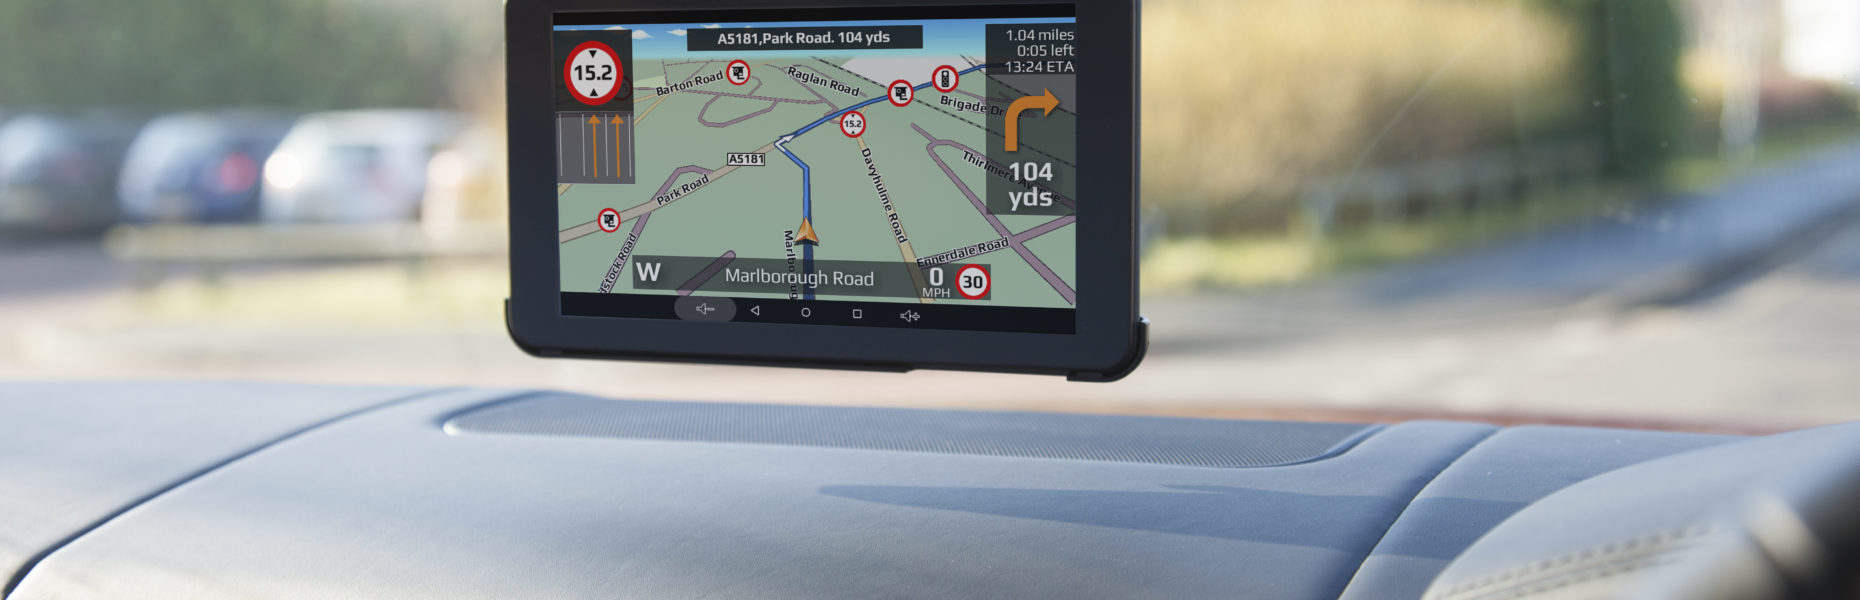 sat nav showing in care height restriction